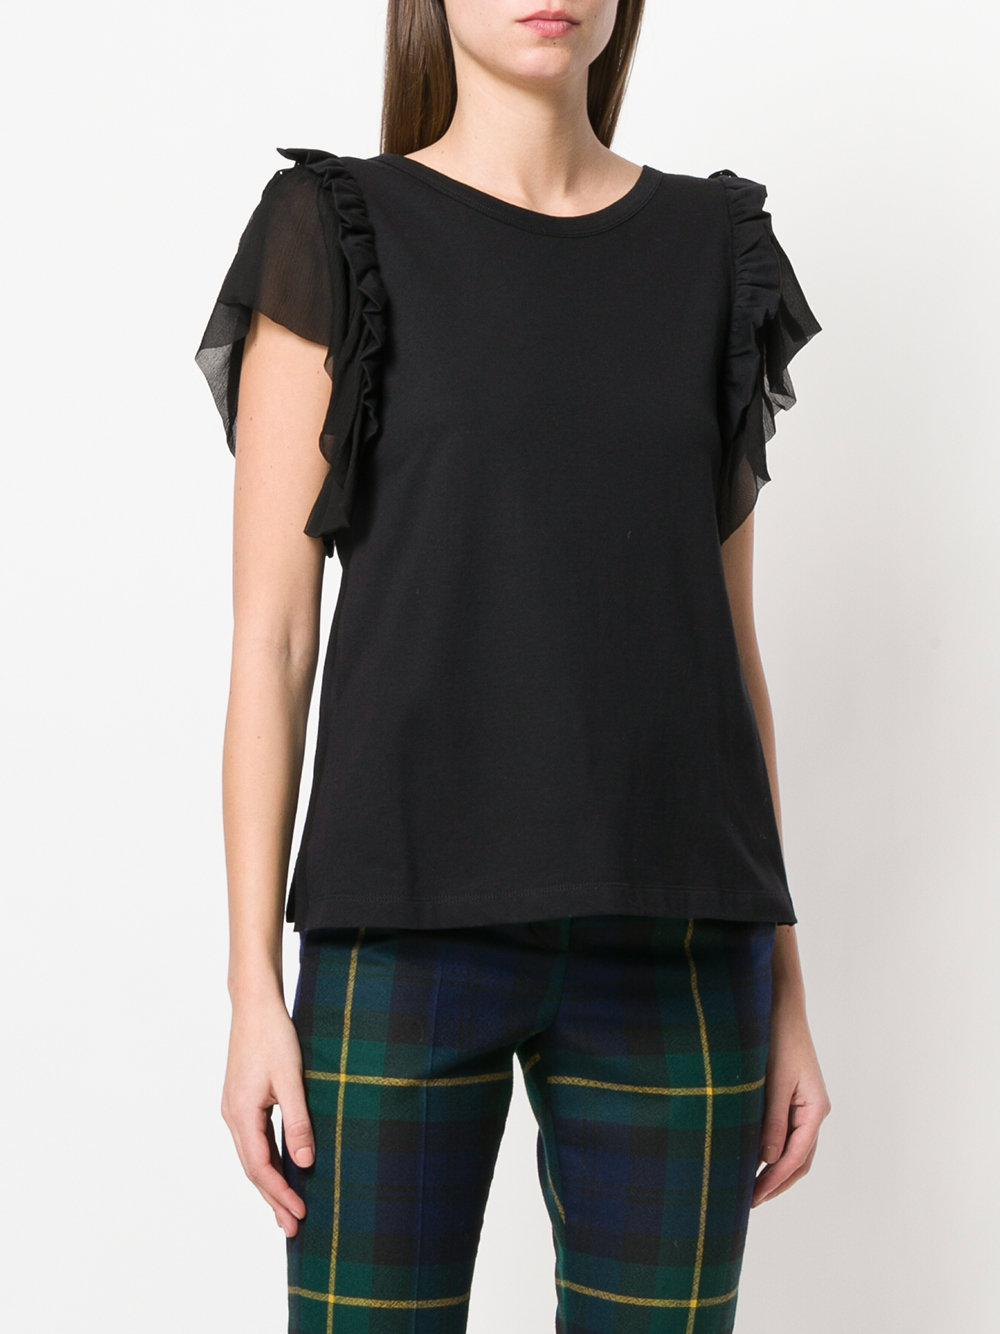 Free Shipping Clearance Clearance Amazon ruffle sleeve top - Black N°21 Free Shipping Sale Online Low Price Cheap Online NtagsLrW13